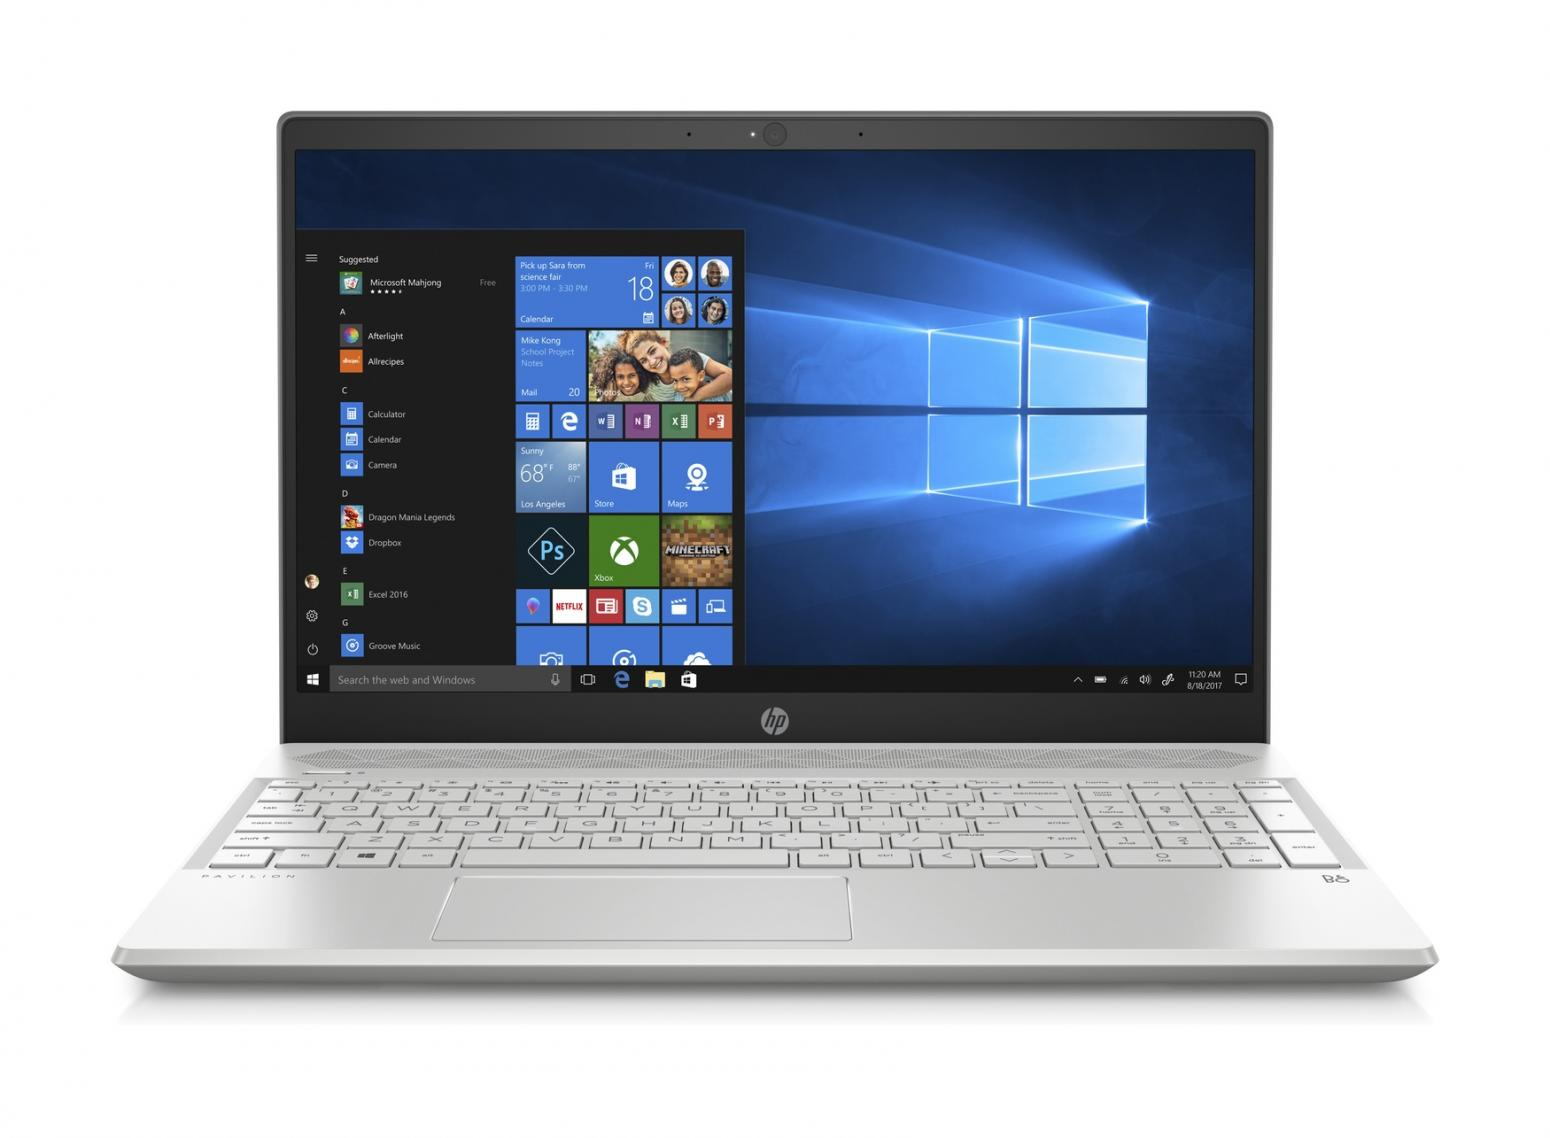 Ordinateur portable HP Pavilion 15-cs3020nf Argent - RAM 16 Go, Wi-Fi ax - photo 2